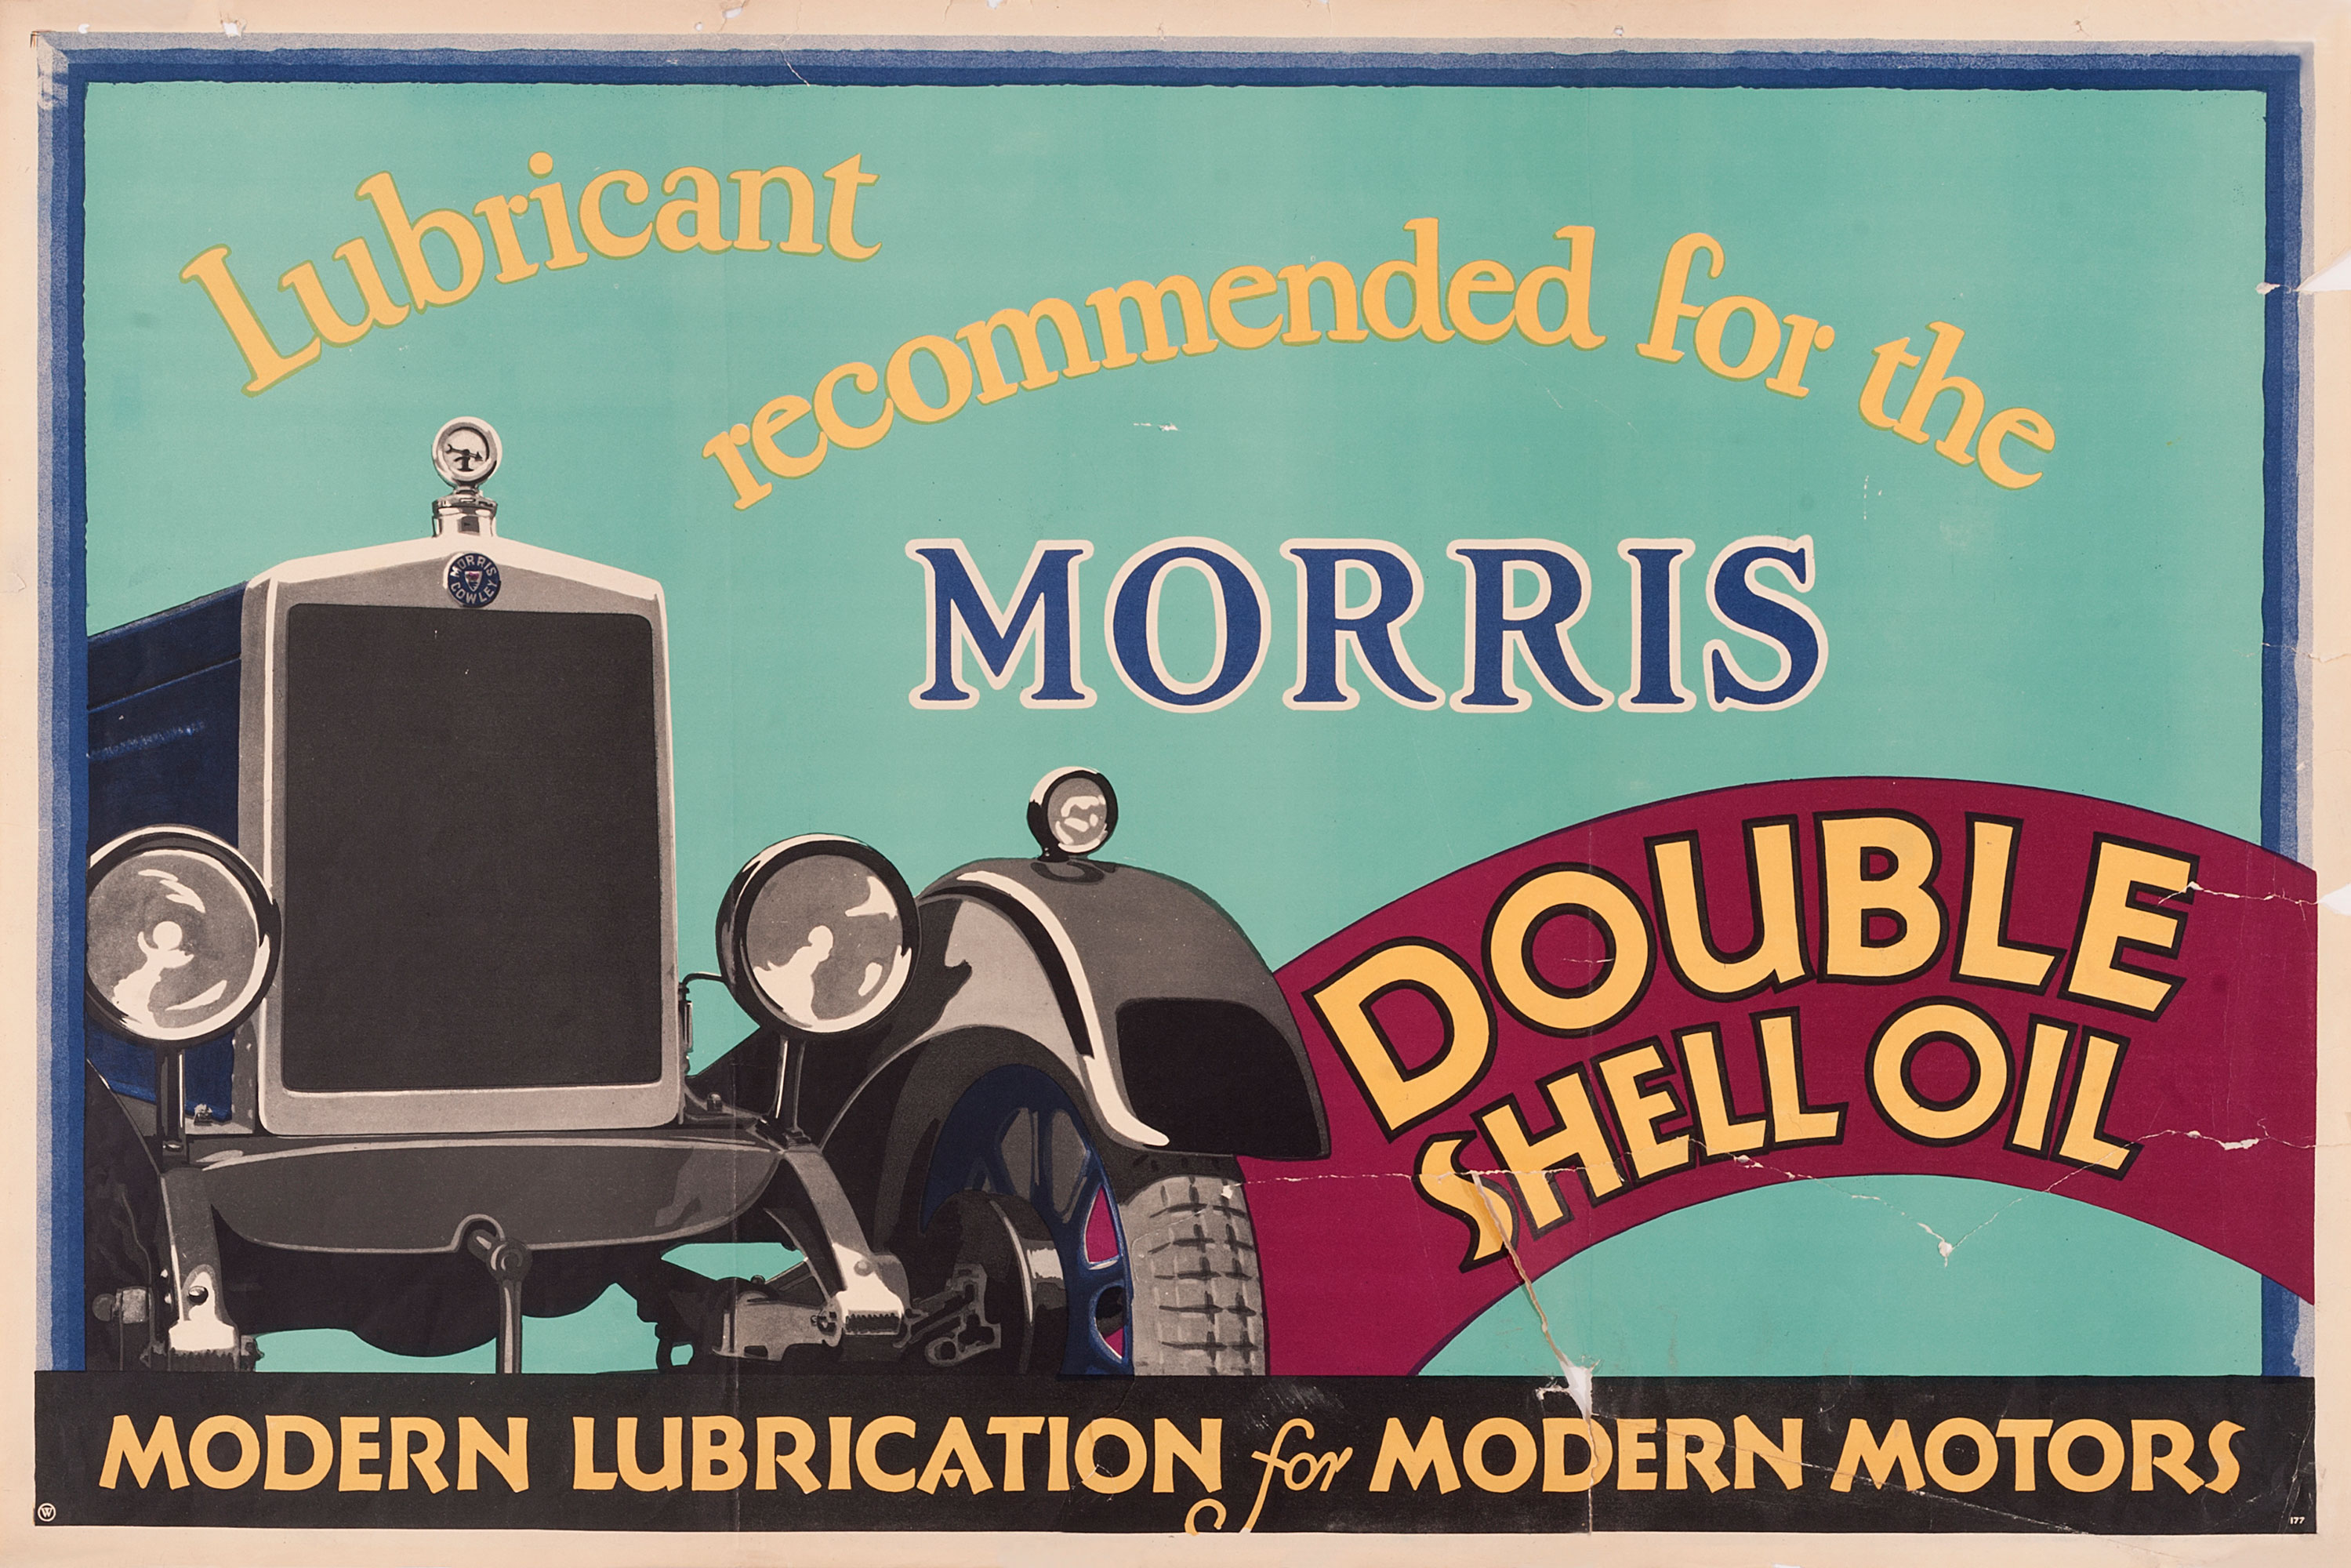 """Shell poster number 177, Recommended for the Morris (1928), no artist given. Painting of the front of a Morris car with the caption; """"Lubricant recommended for the Morris, double Shell Oil, Modern Lubrication for Modern Motors."""""""